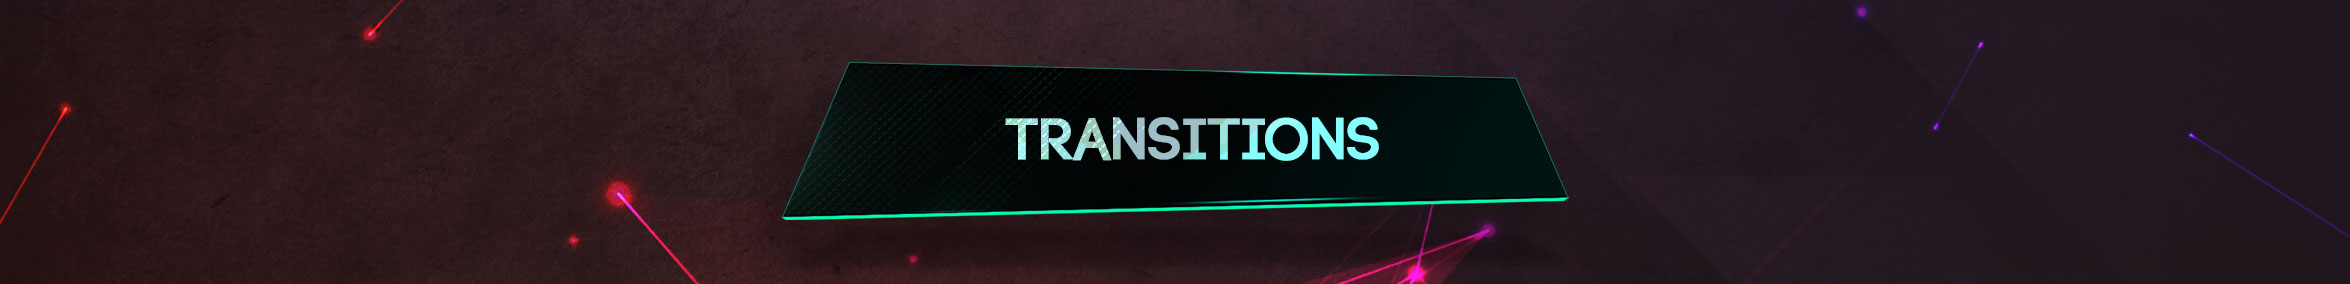 animated transitions wipes